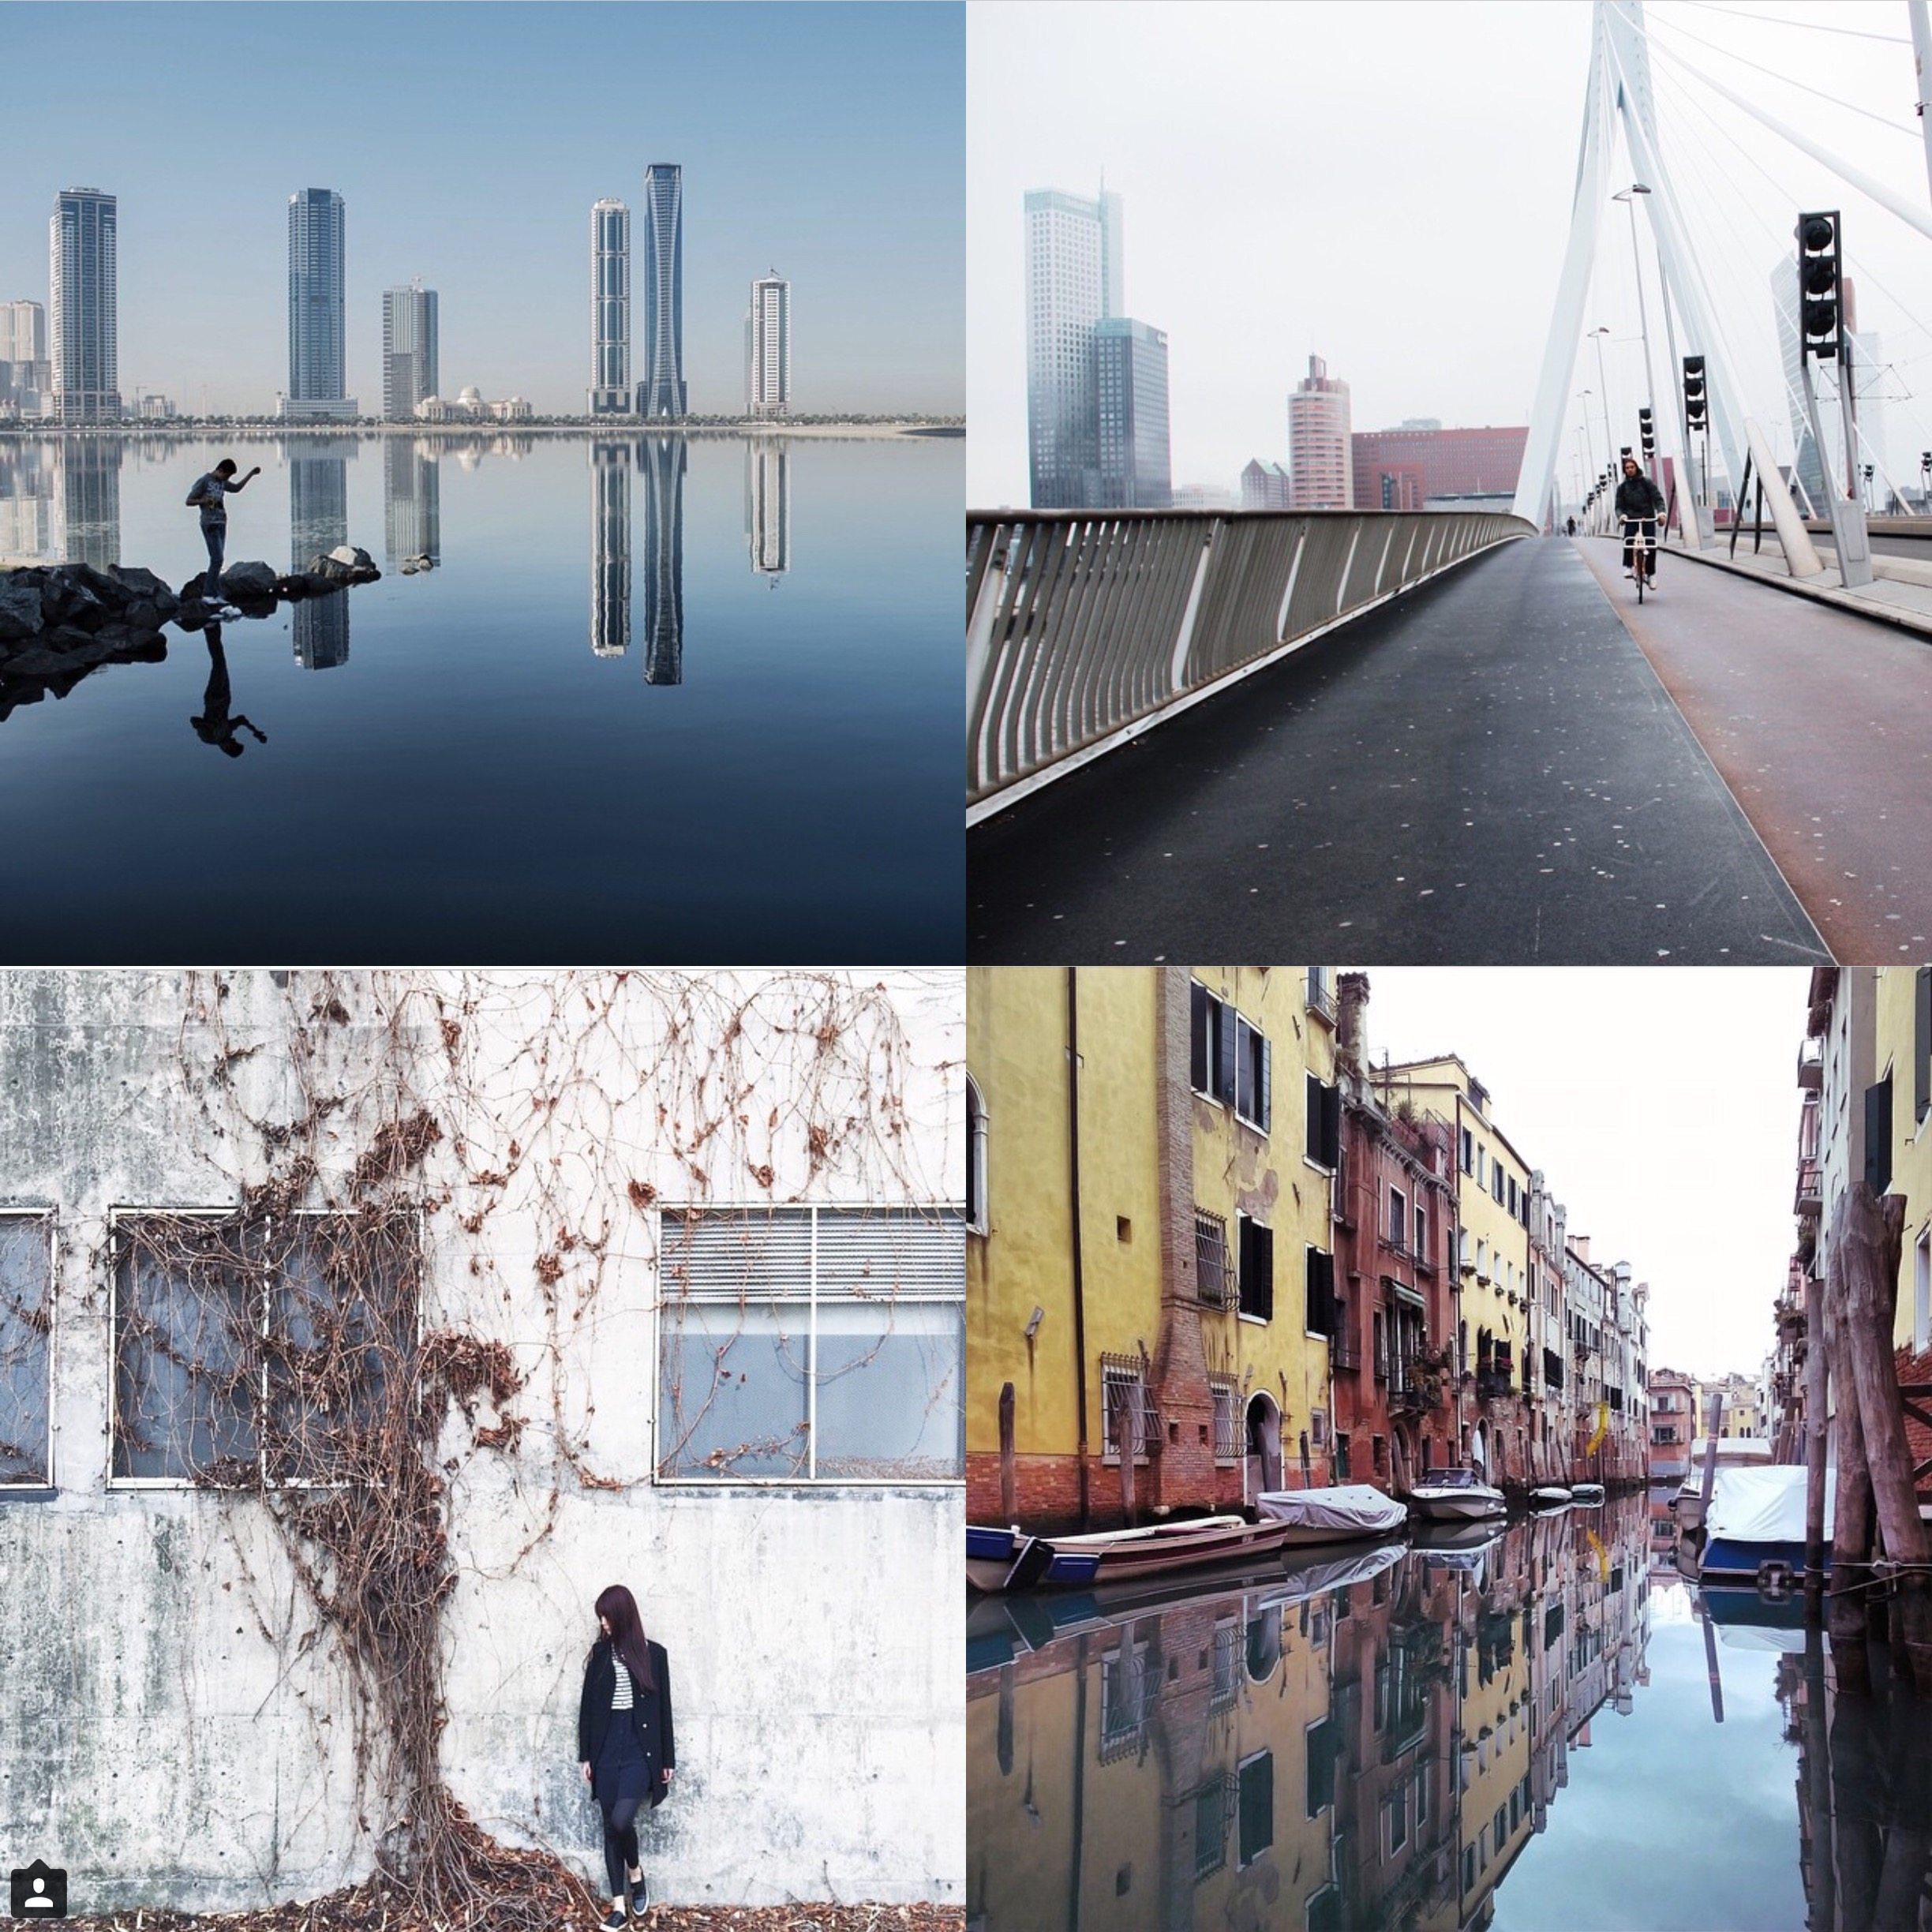 SeeMyCity Photos Of The Week 2015 - Week 4